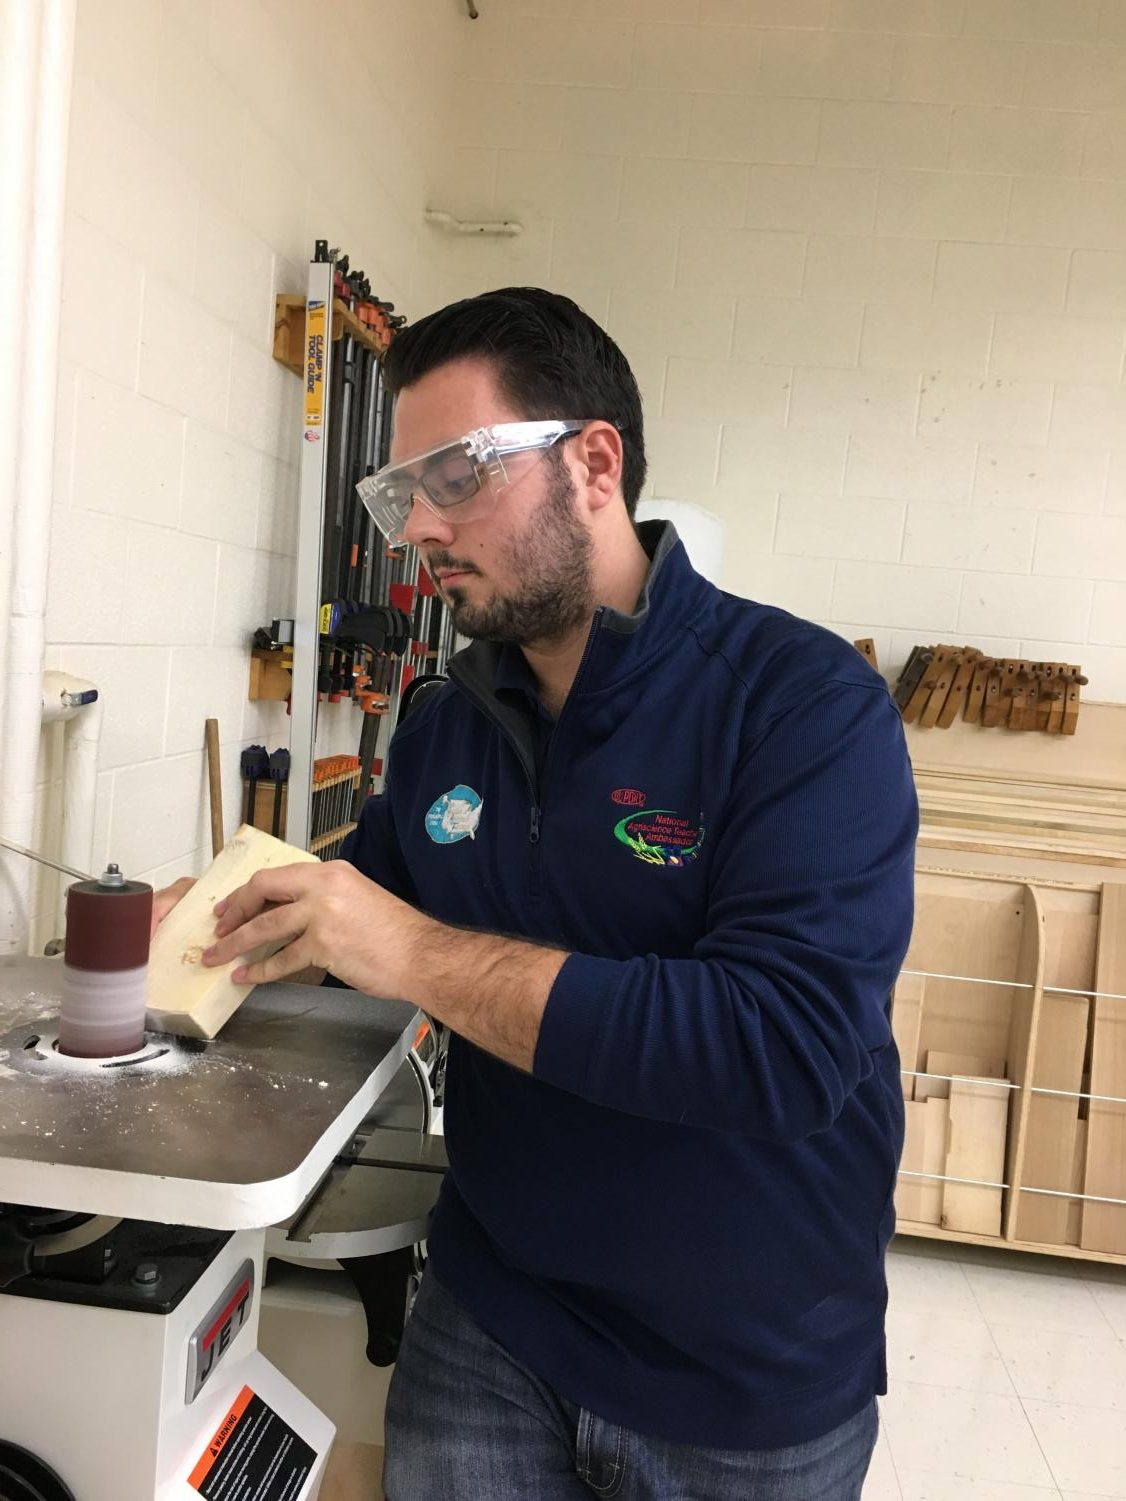 Mr. Bernia works on a project in his shop